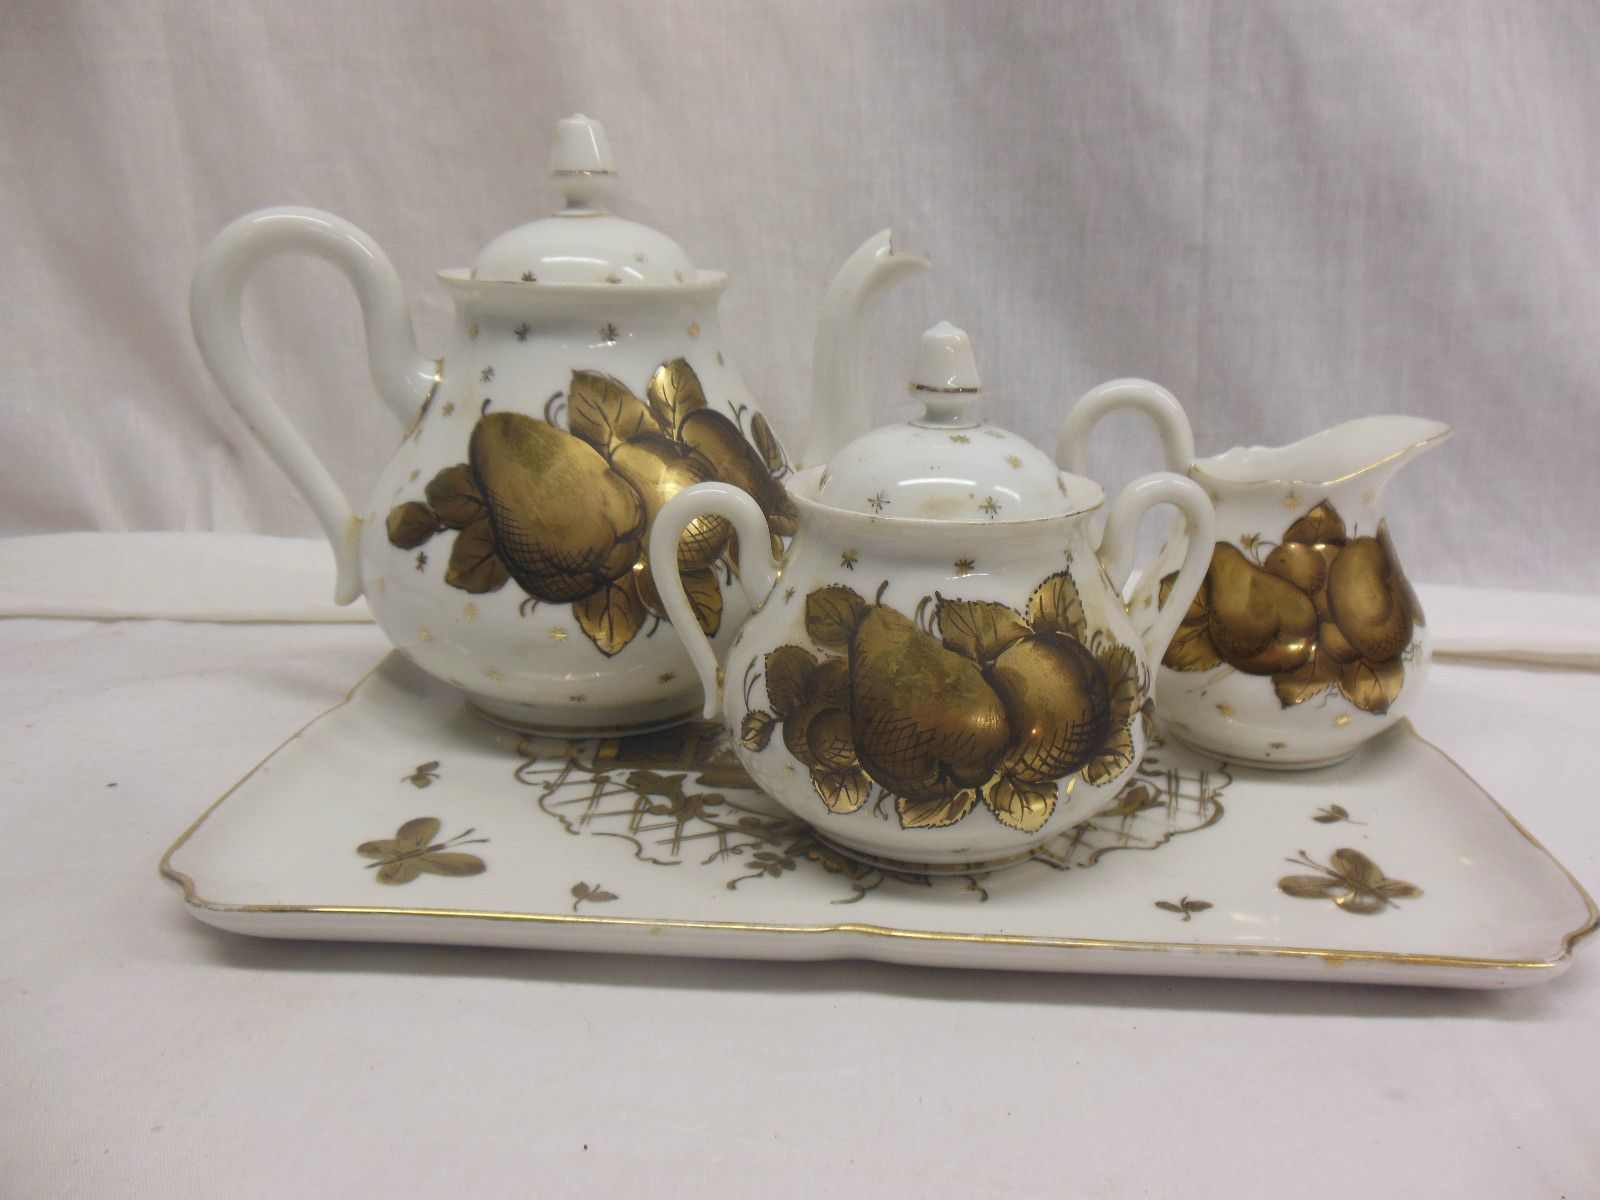 Limoges Porcelain (France) U2014 Tea Set (1600x1200)